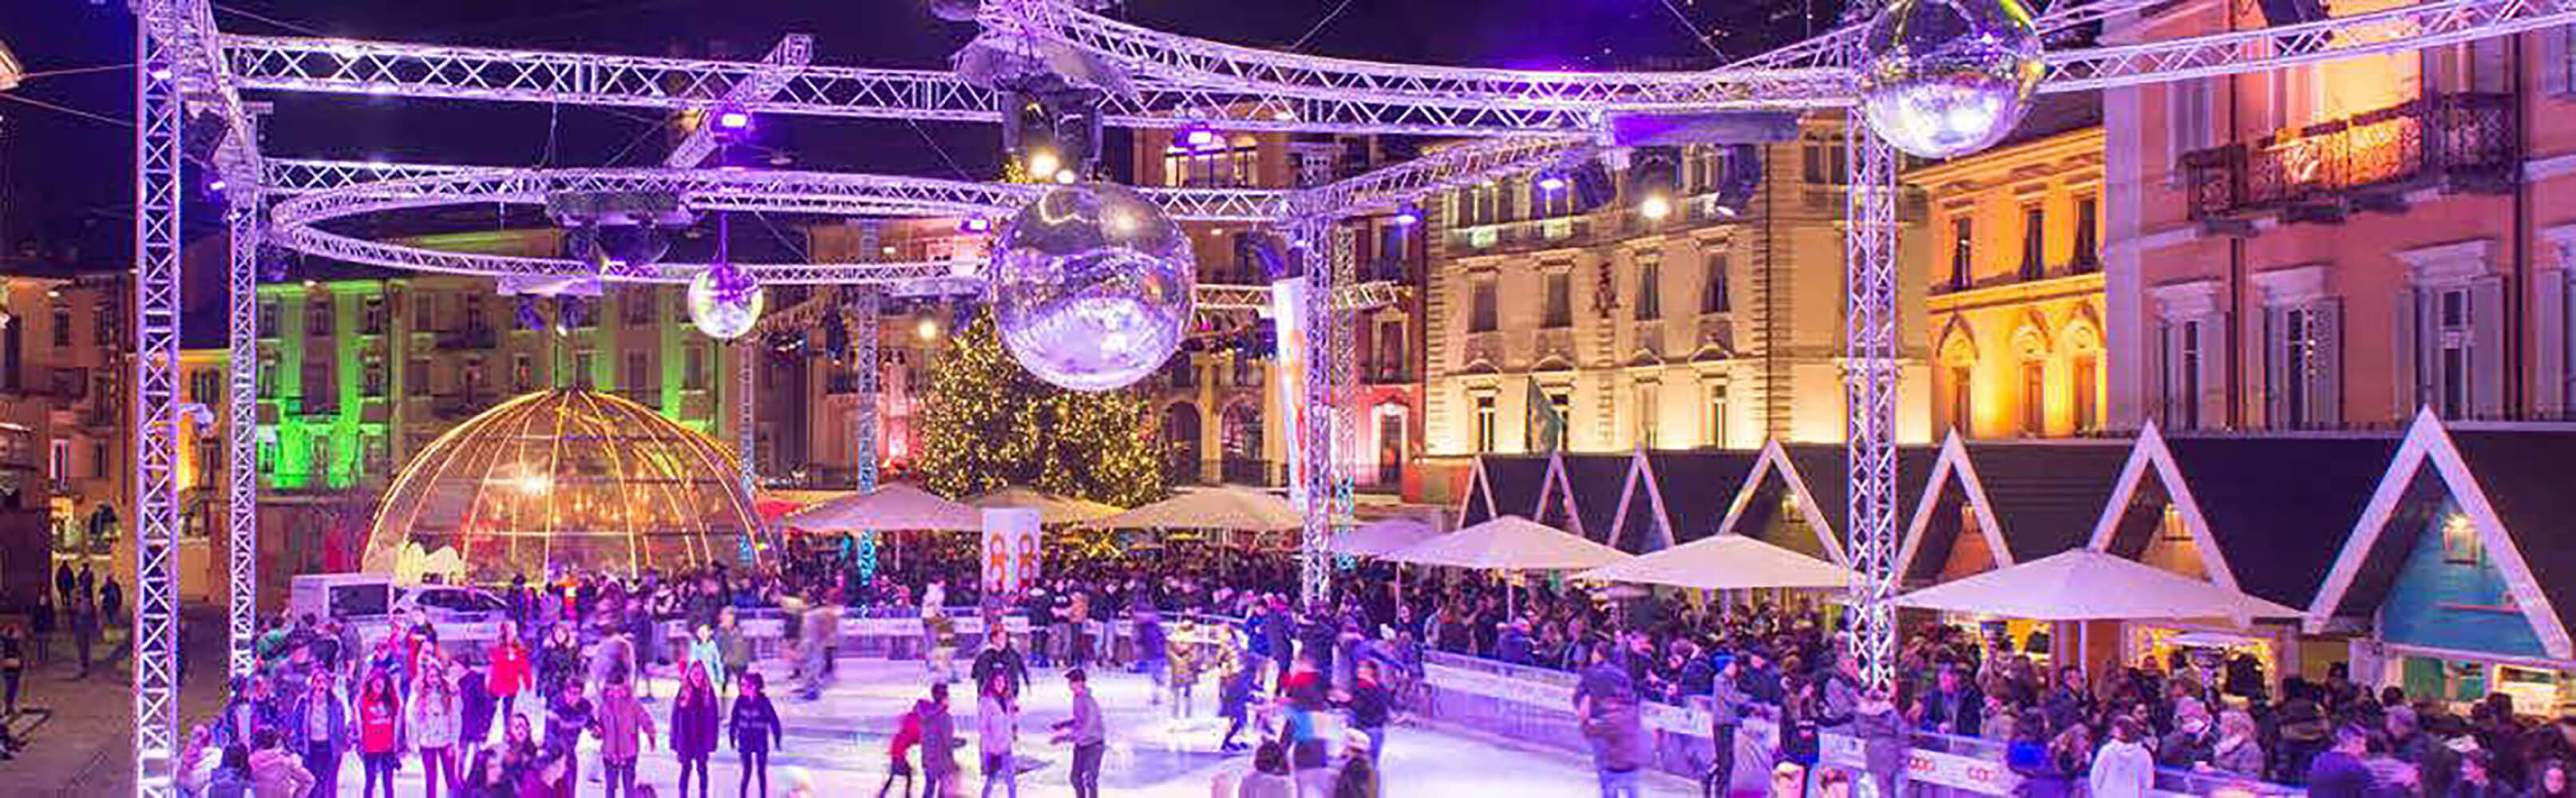 Eisbahn Locarno on Ice 1